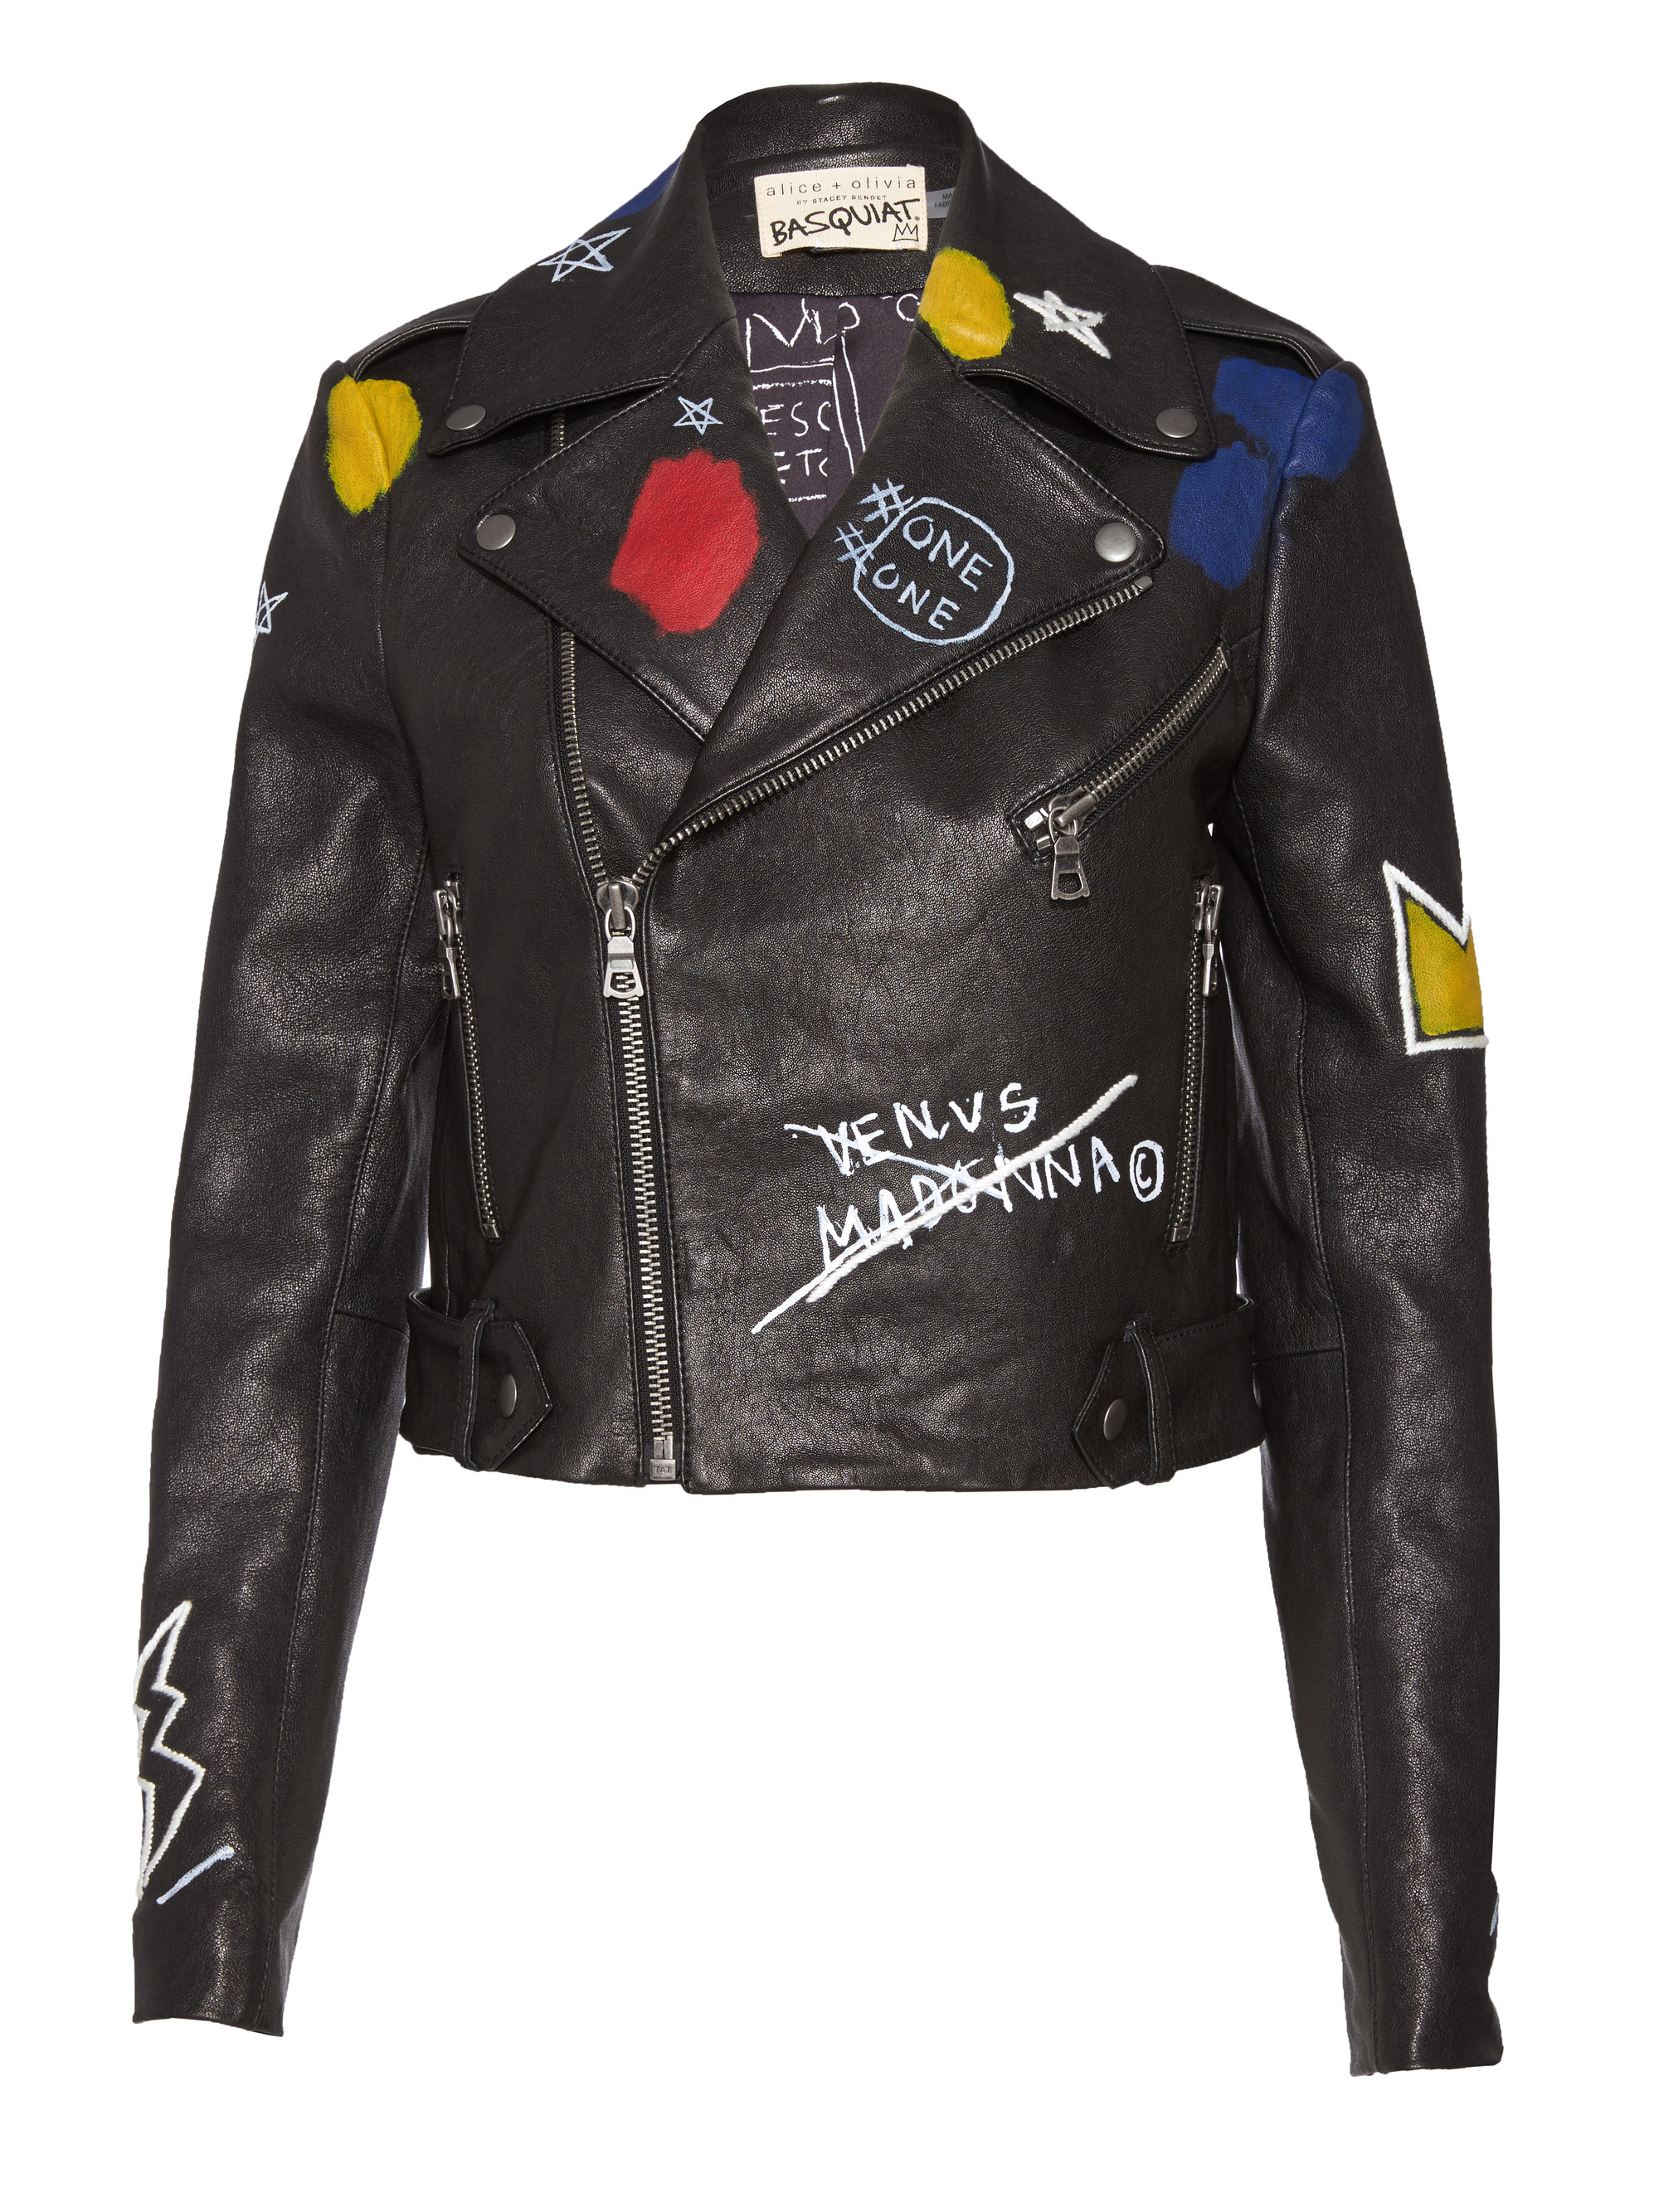 Show your arty side in an Alice + Olivia x Basquiat jacket